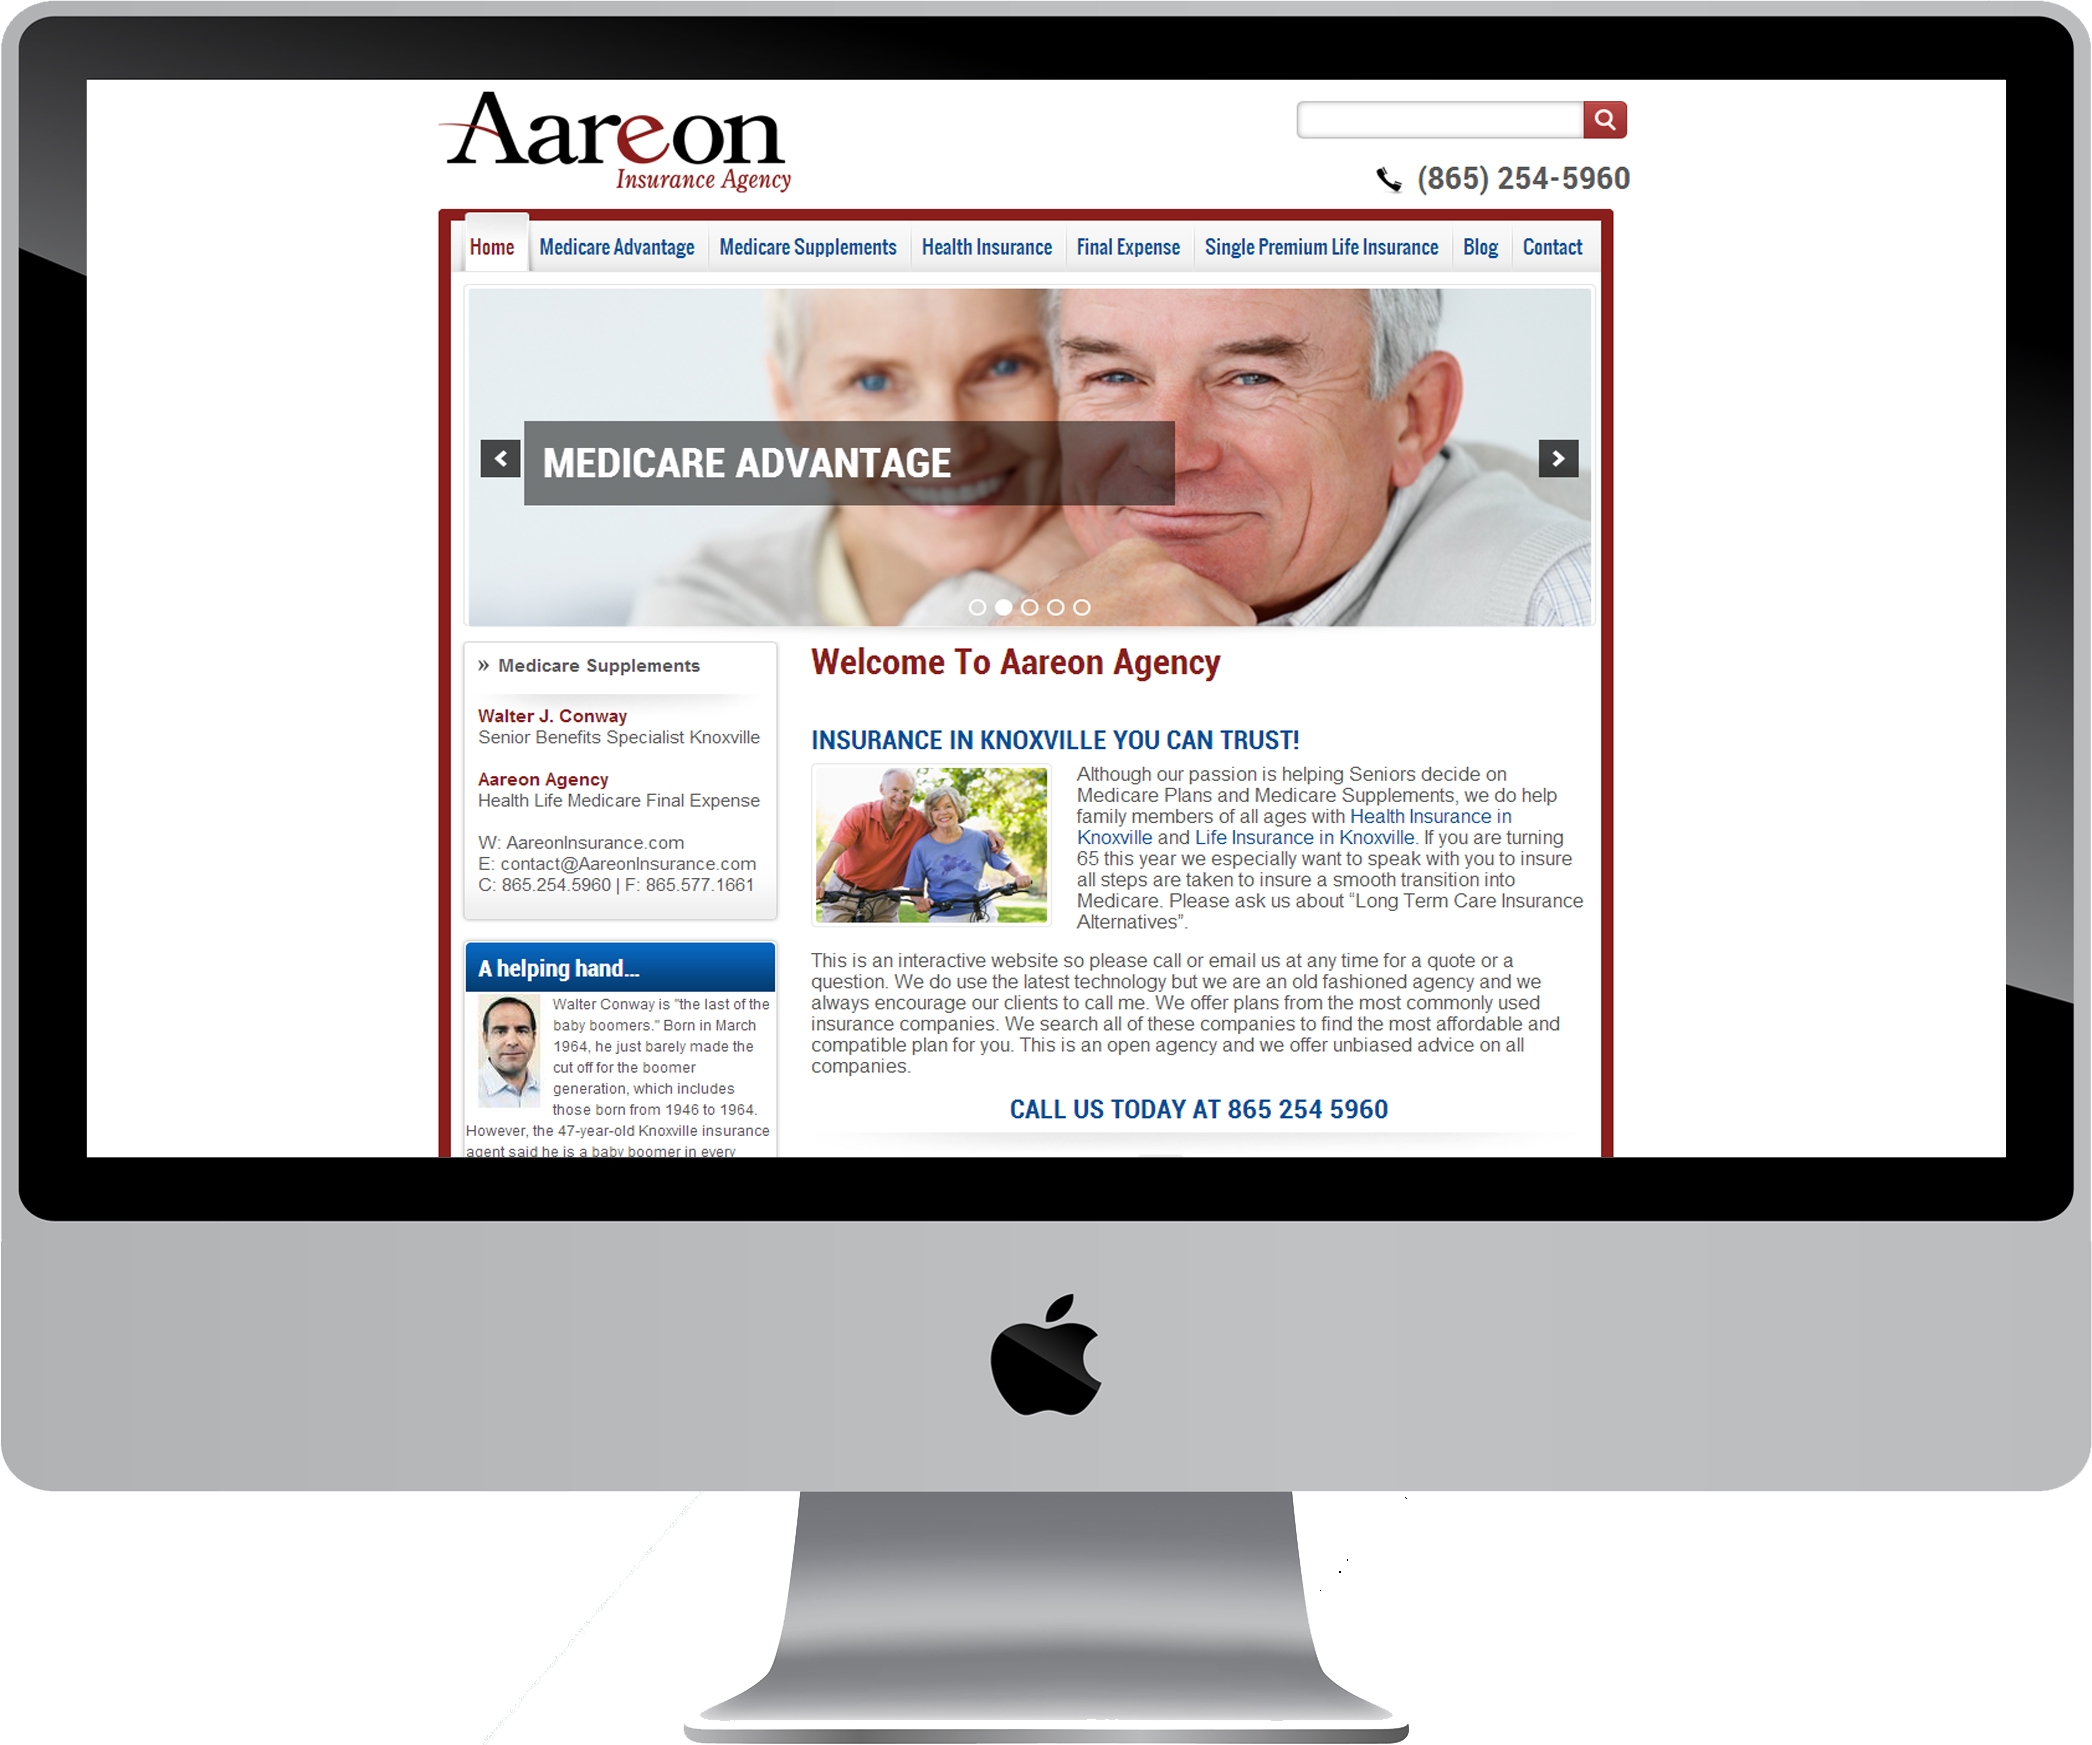 Aareon Insurance Agency on a Desktop